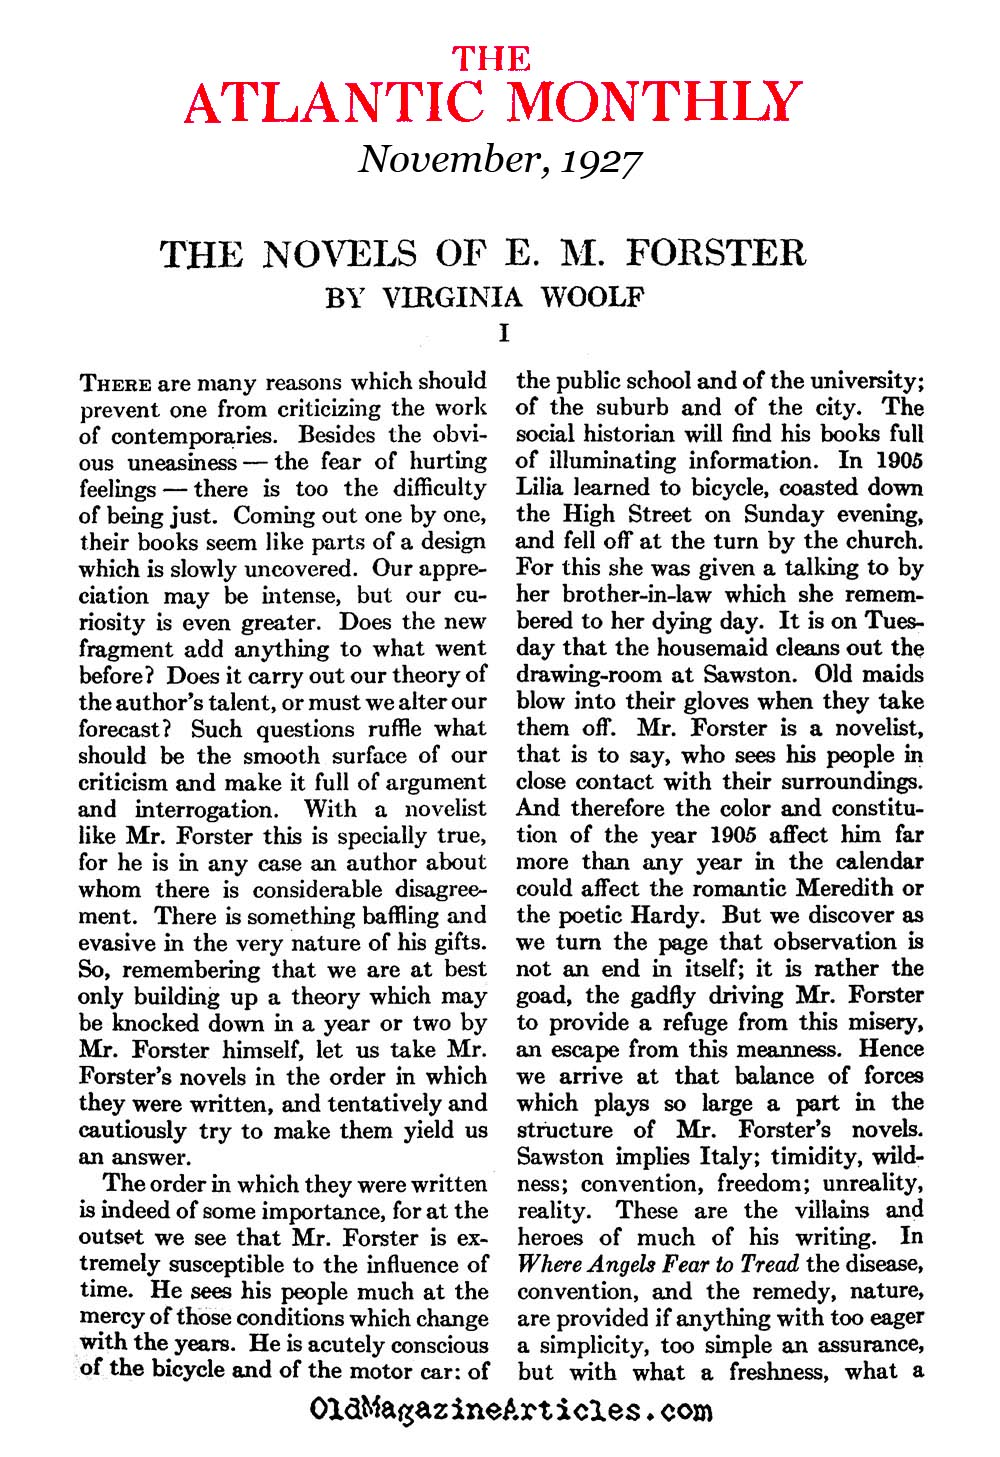 Virginia Woolf Reviews E.M. Forster (Atlantic Monthly, 1927)